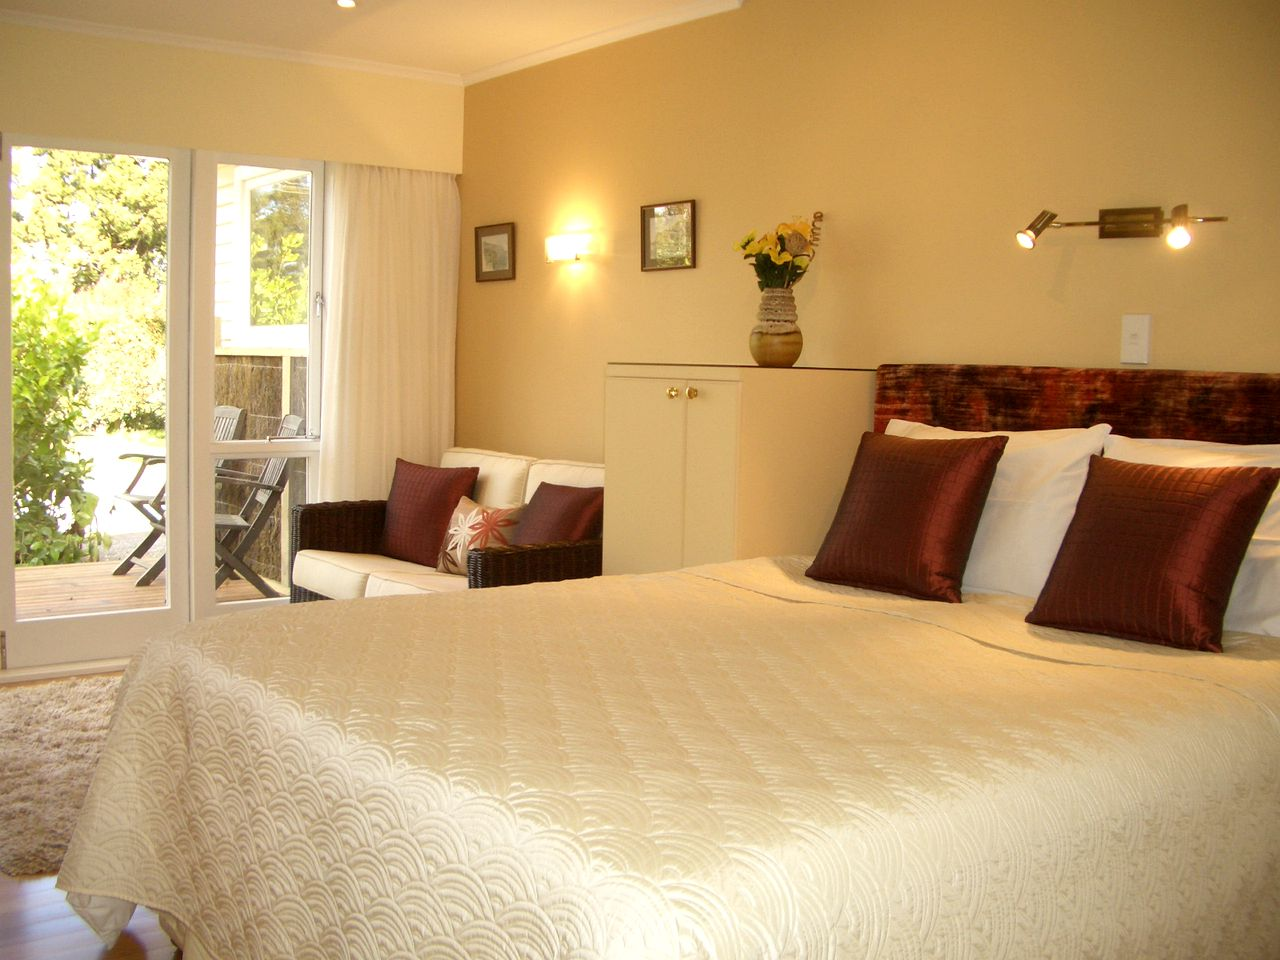 Suite With A Hot Tub In Kerikeri New Zealand